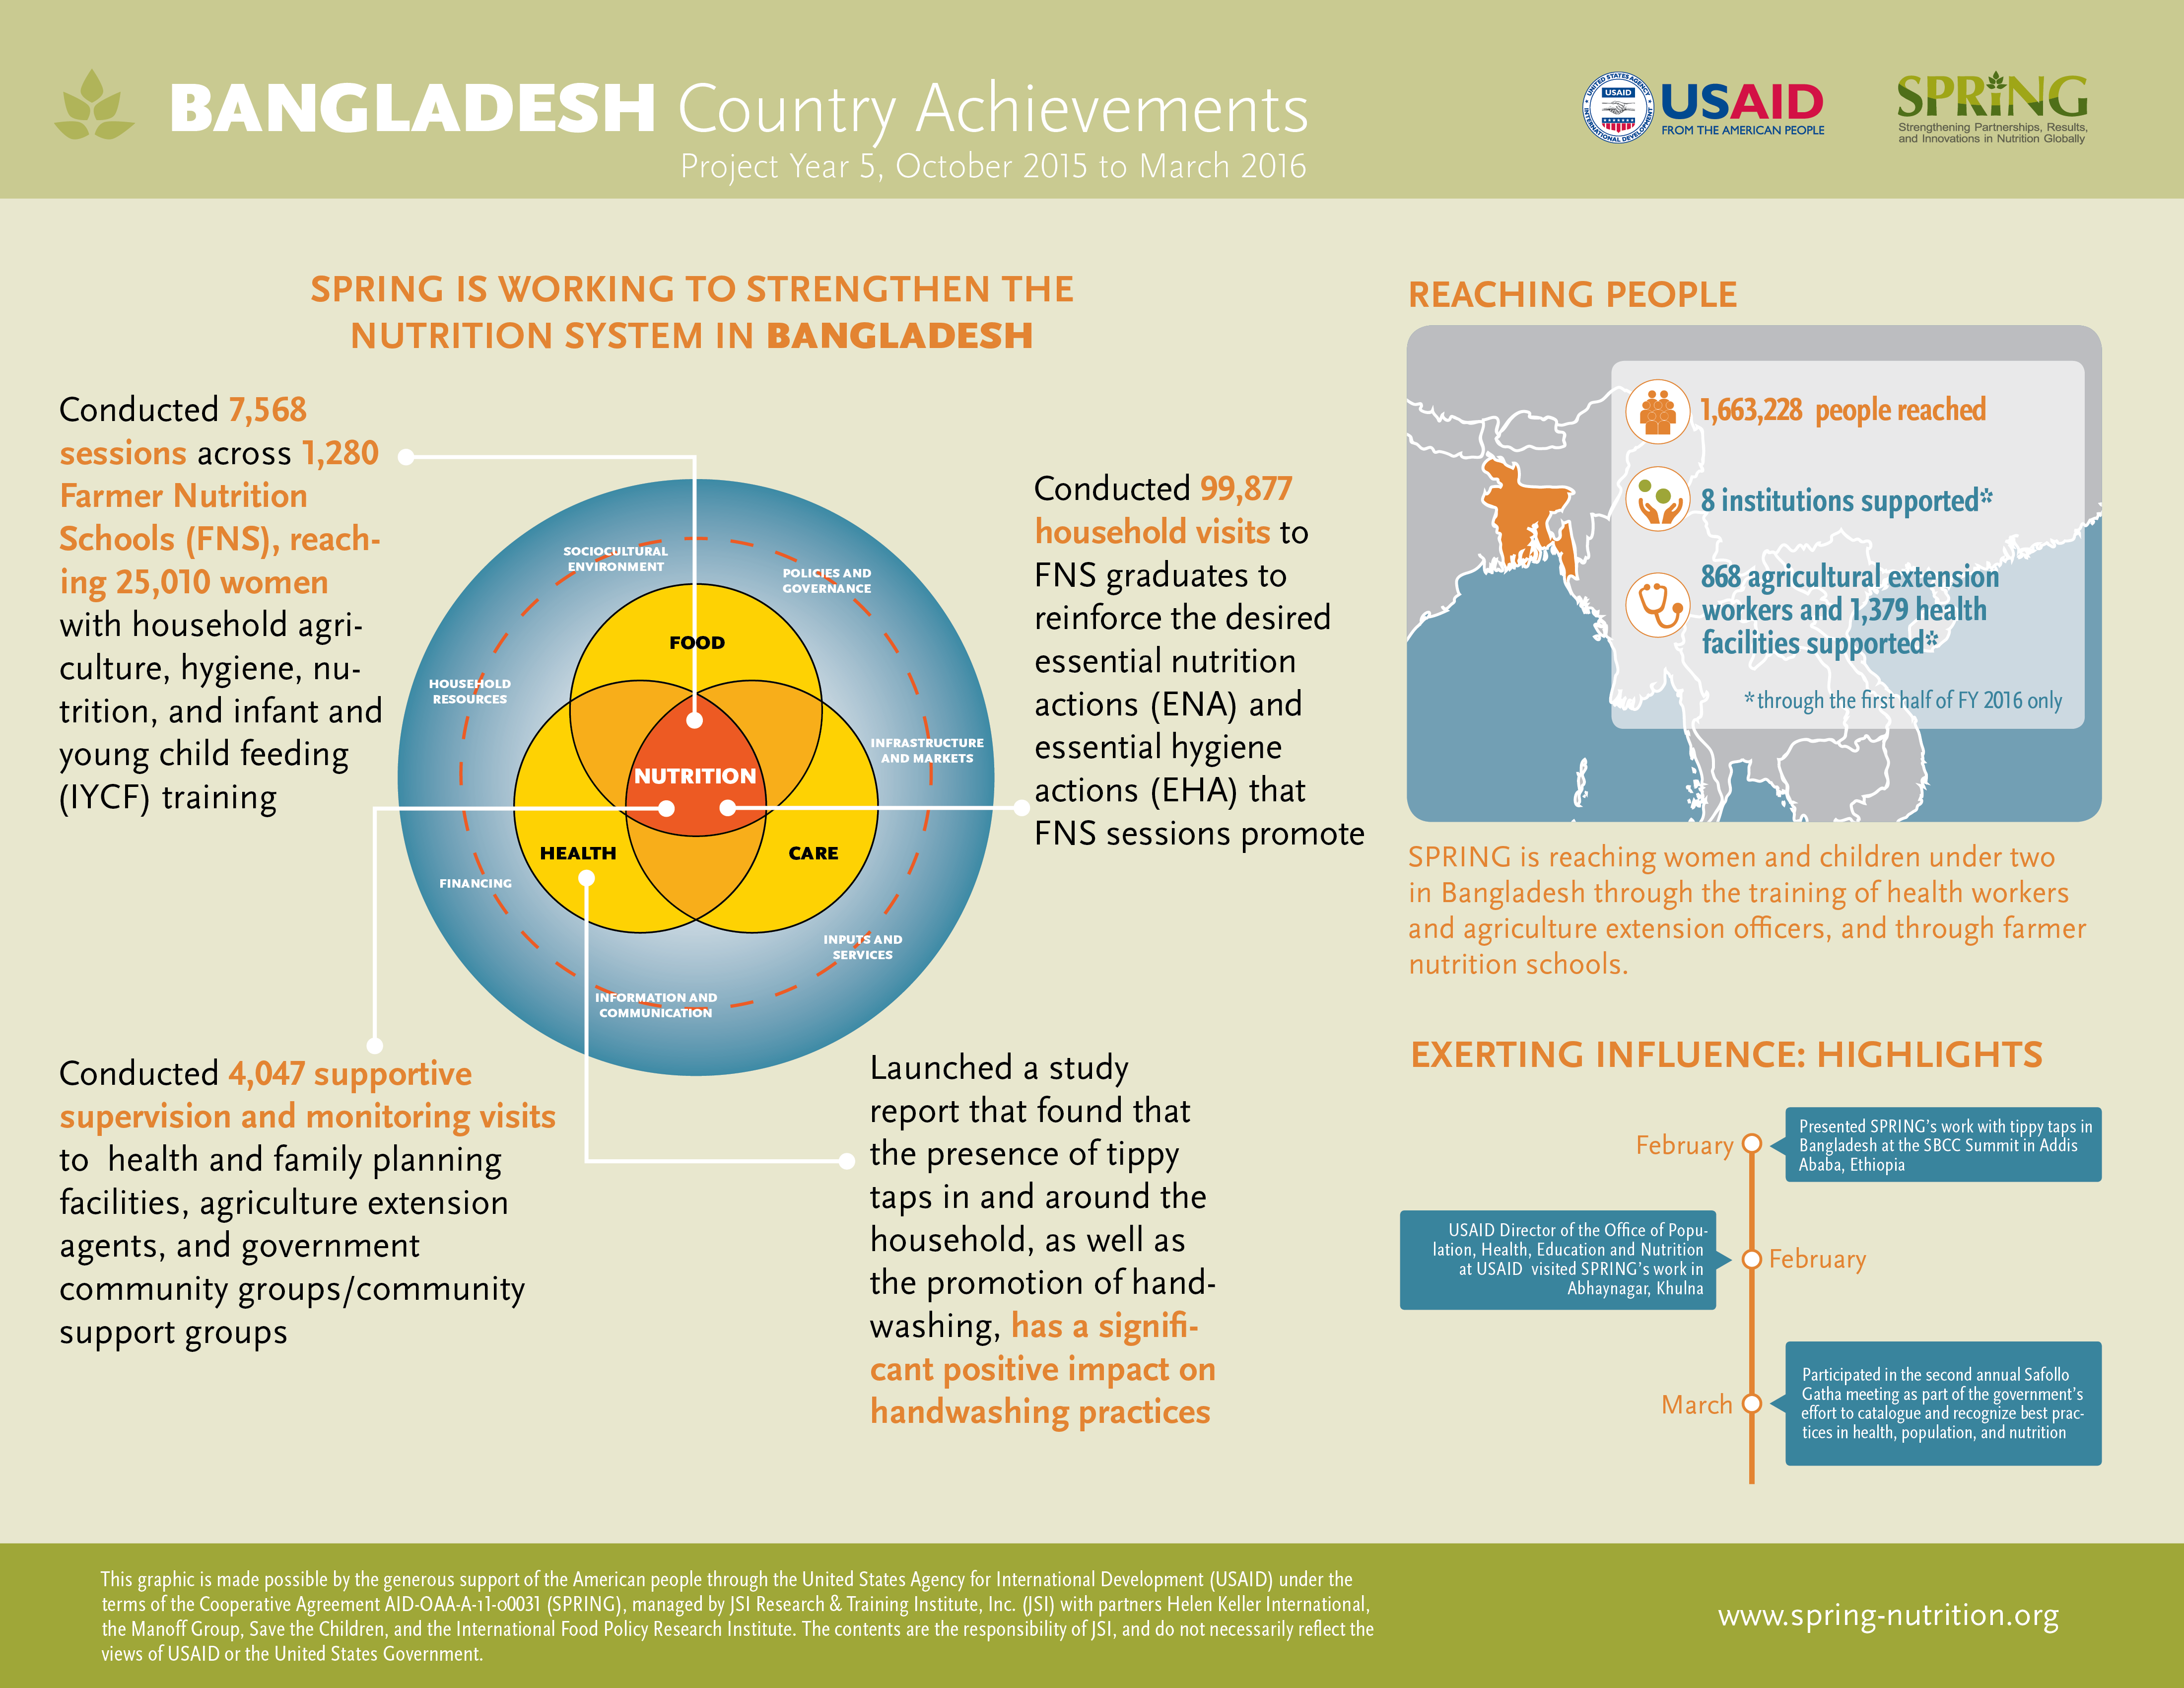 Bangladesh Country Achievements, Project Year 5, October 2015 to March 2016